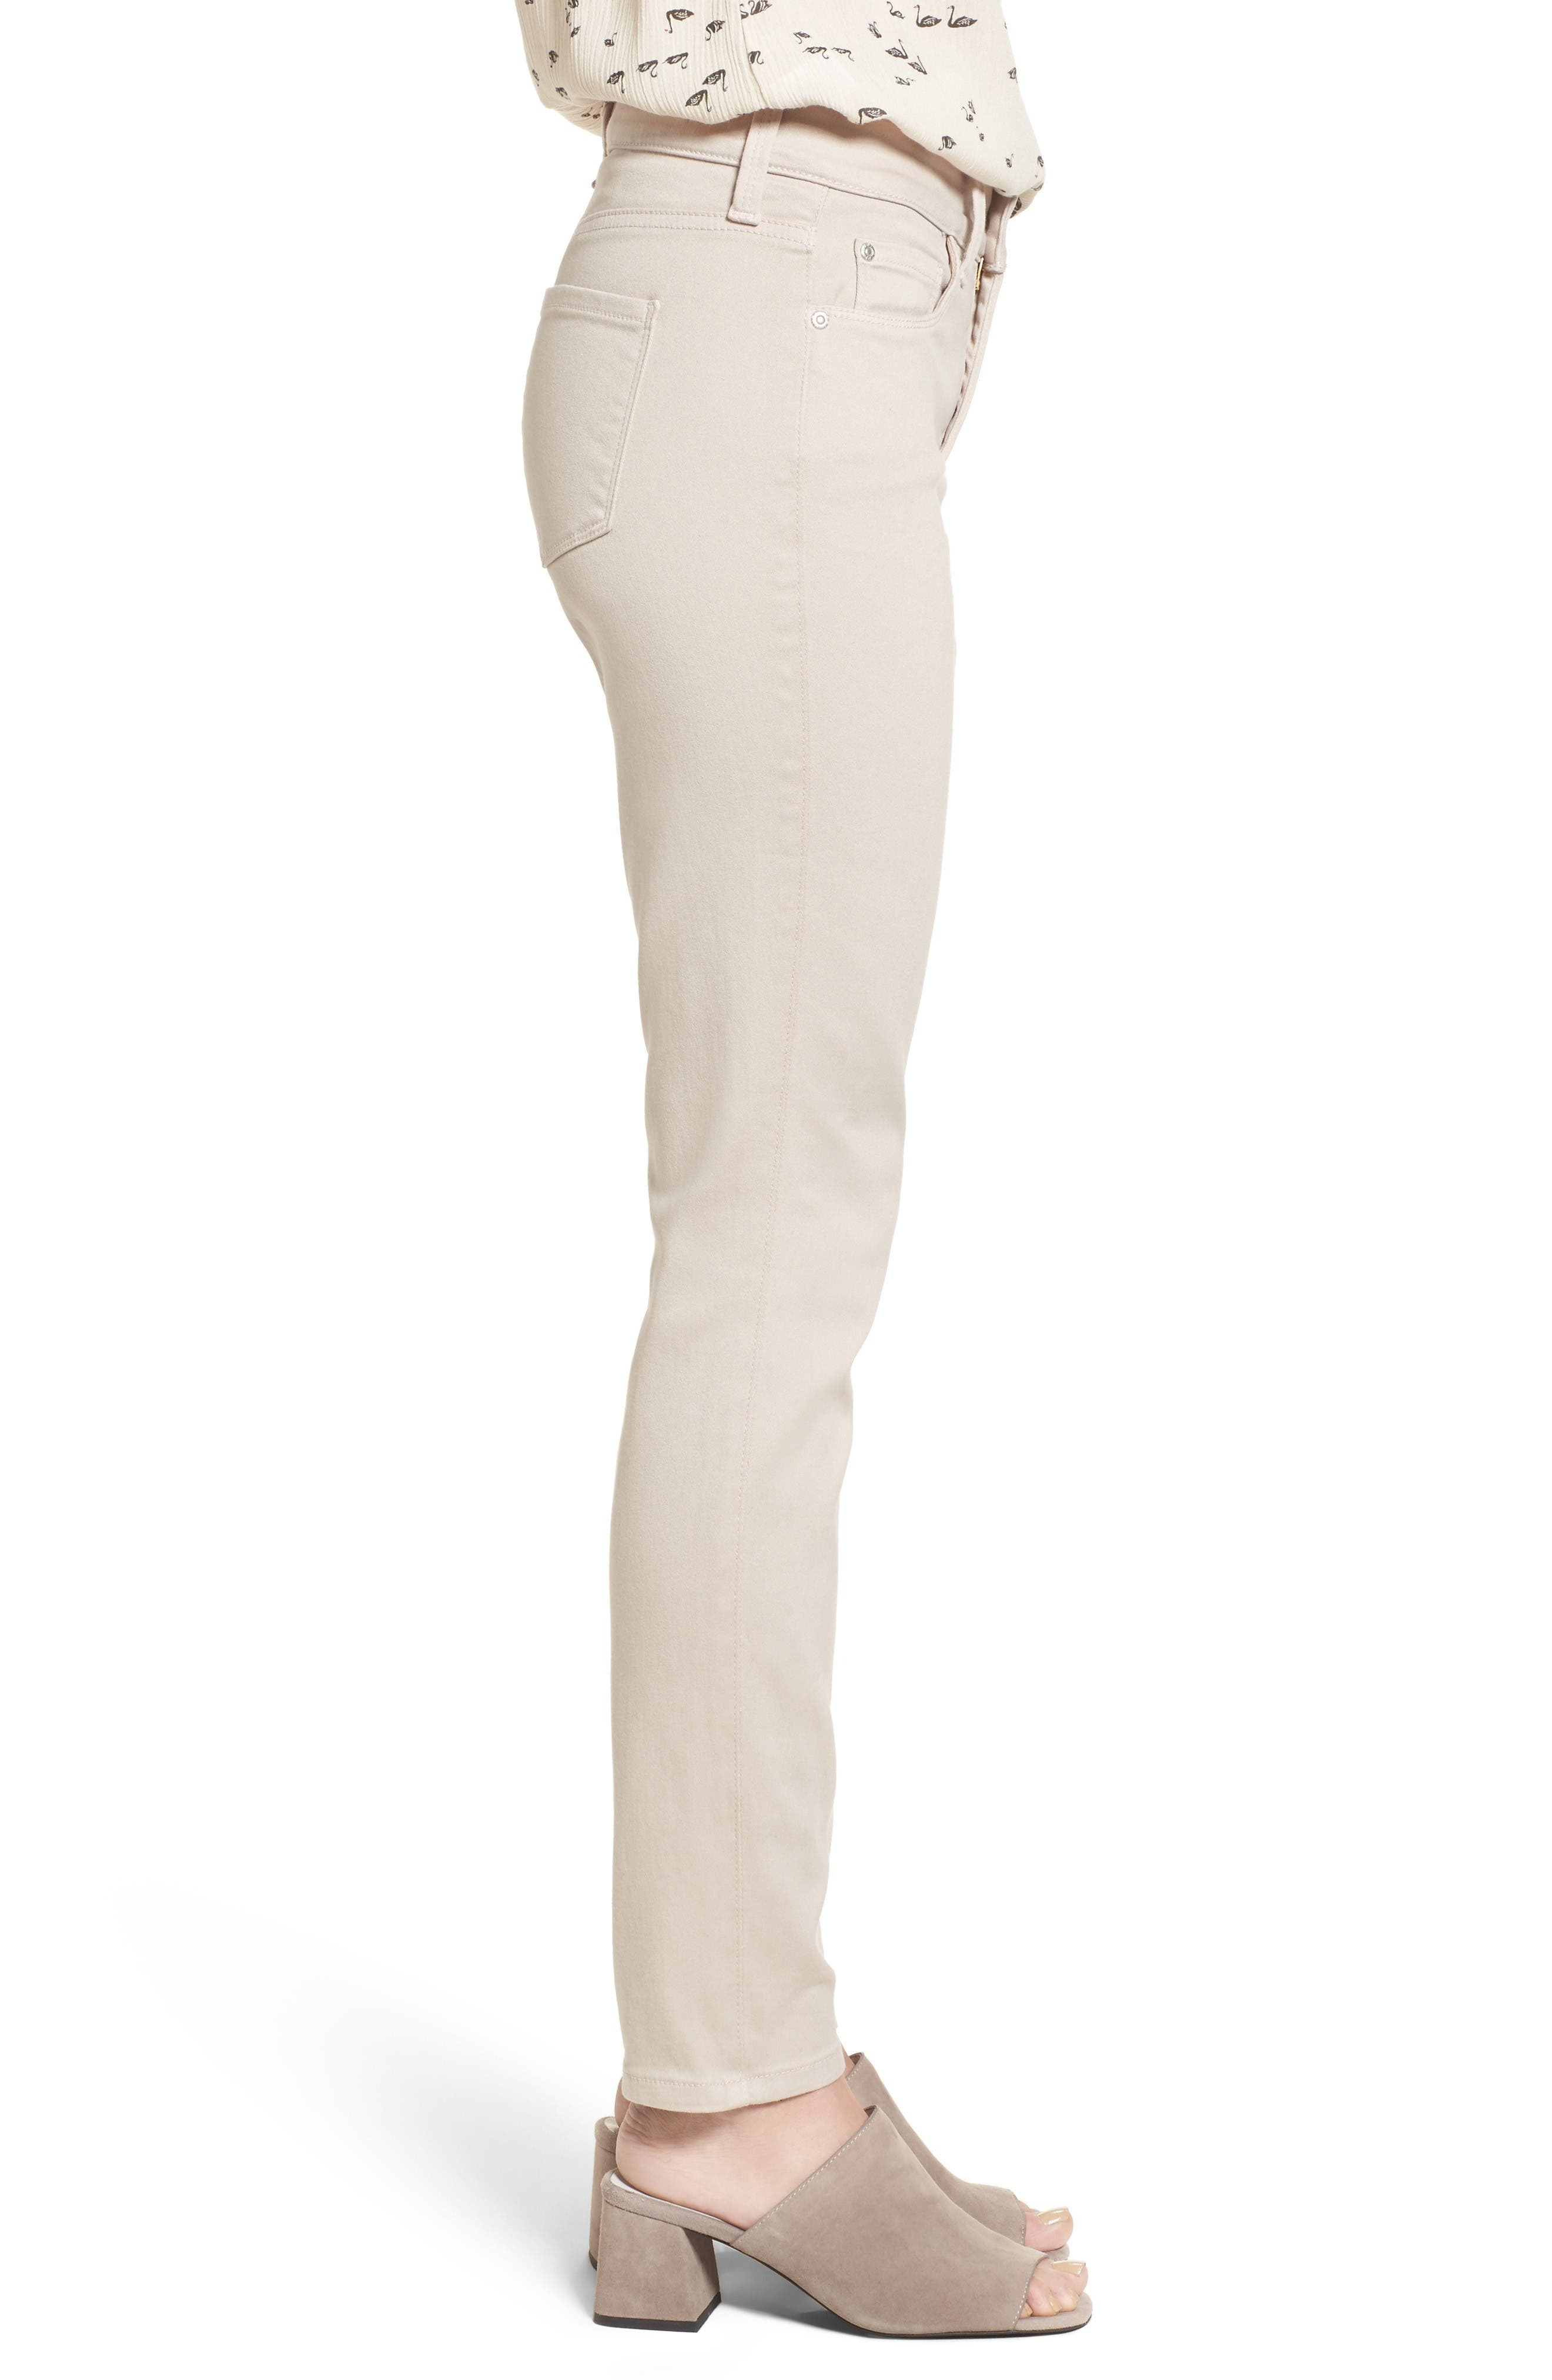 Alina Colored Stretch Skinny Jeans,                             Alternate thumbnail 3, color,                             Rose Mist